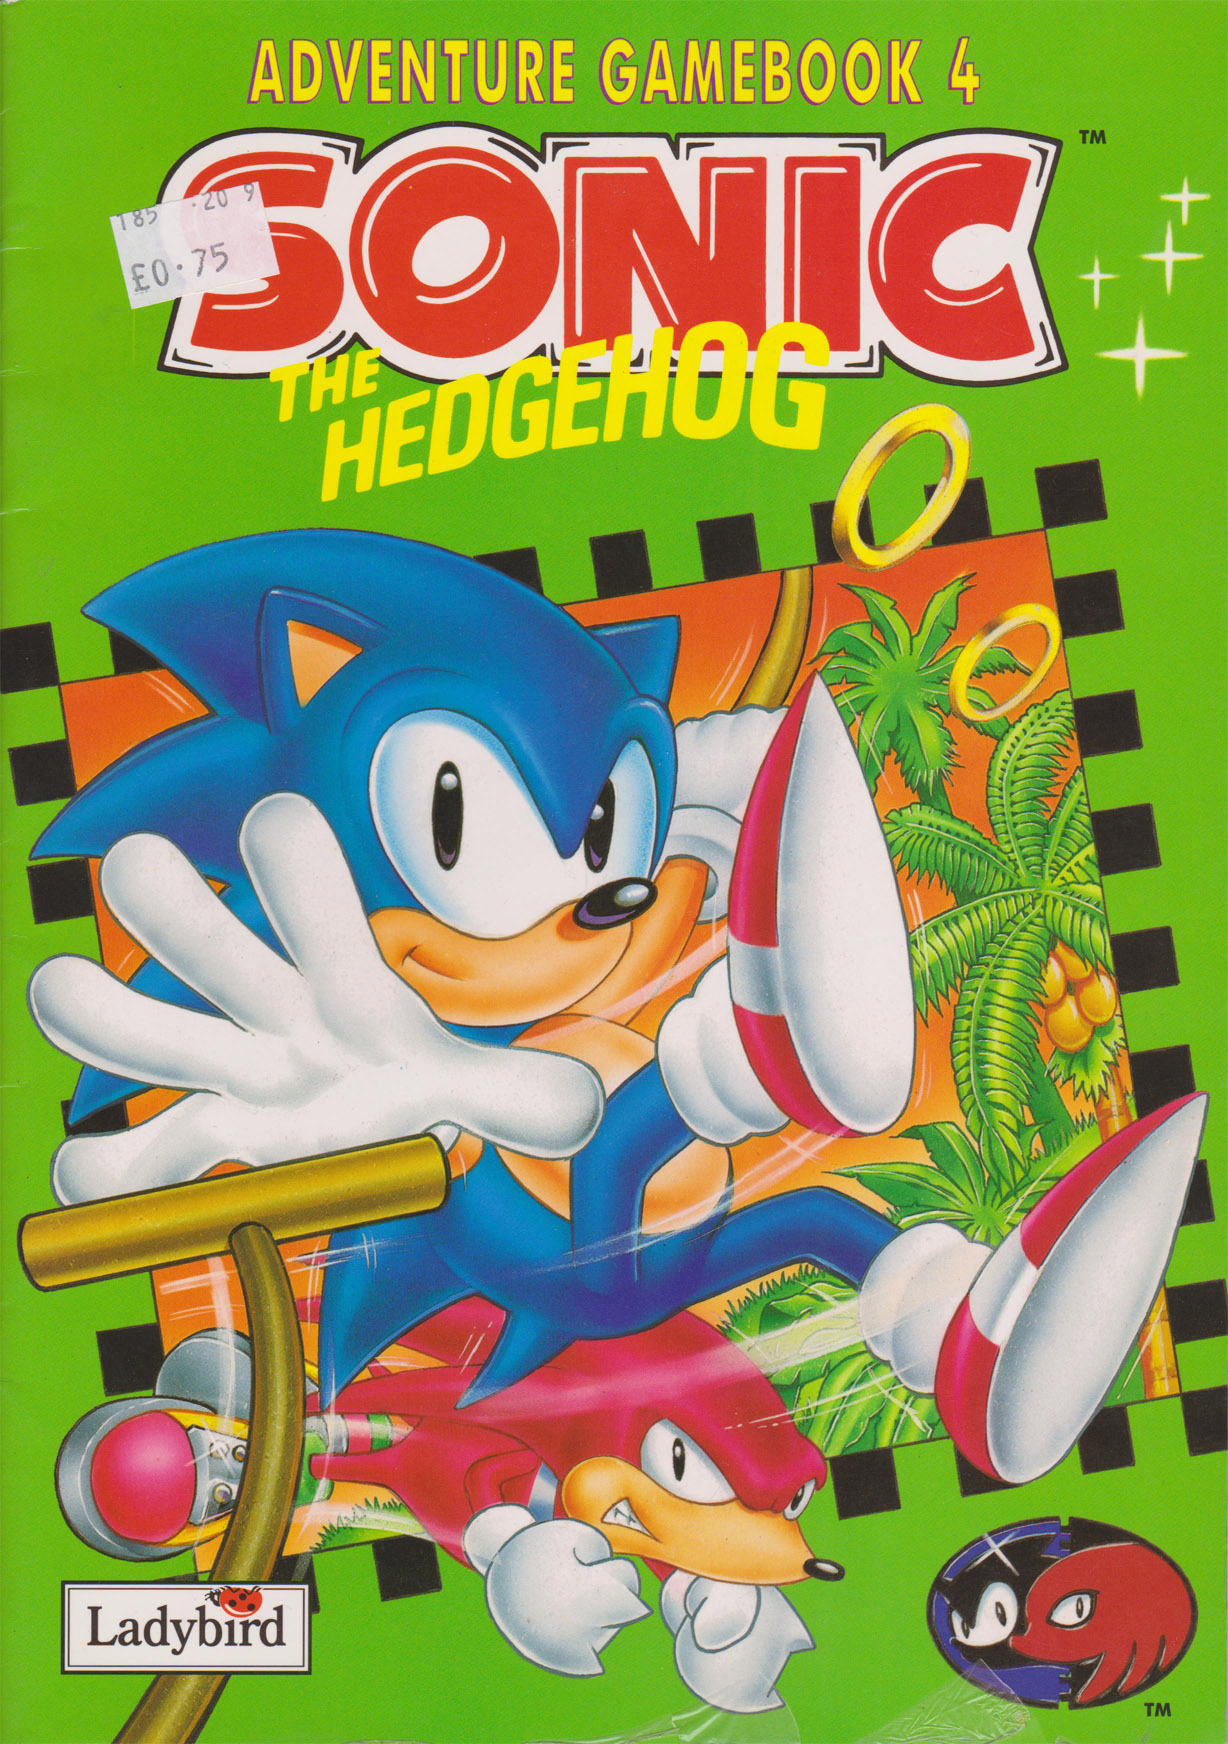 Sonic The Hedgehog Adventure Game Book 4 Segadriven